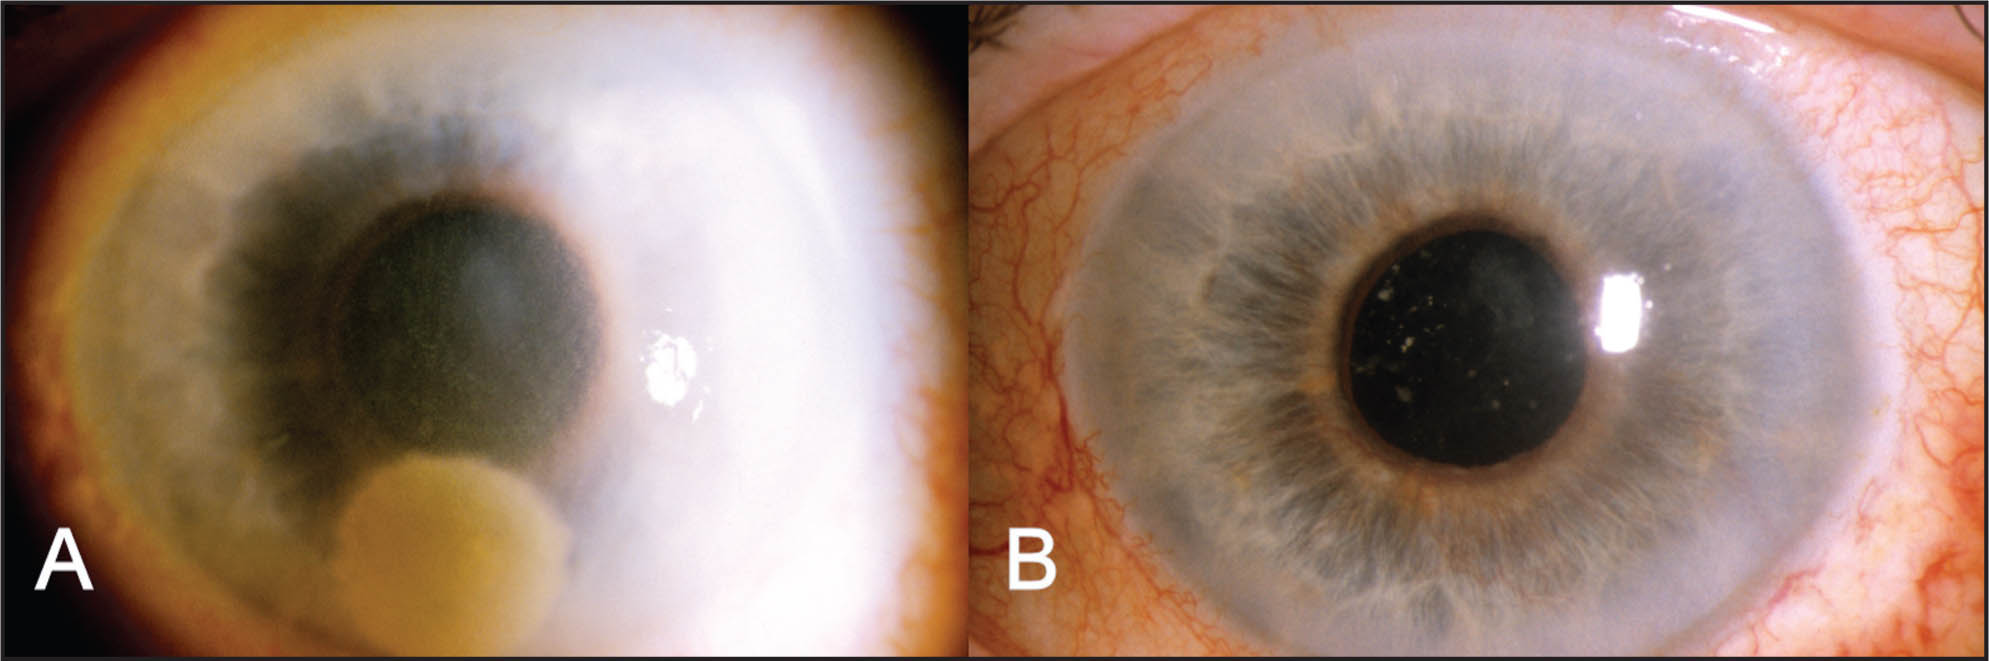 (A) Nucleus of Morgagnian Cataract Causing Early Bullous Keratopathy. (B) Decreased Bullous Keratopathy After Non-Invasive Couching of the Nucleus into the Posterior Segment.